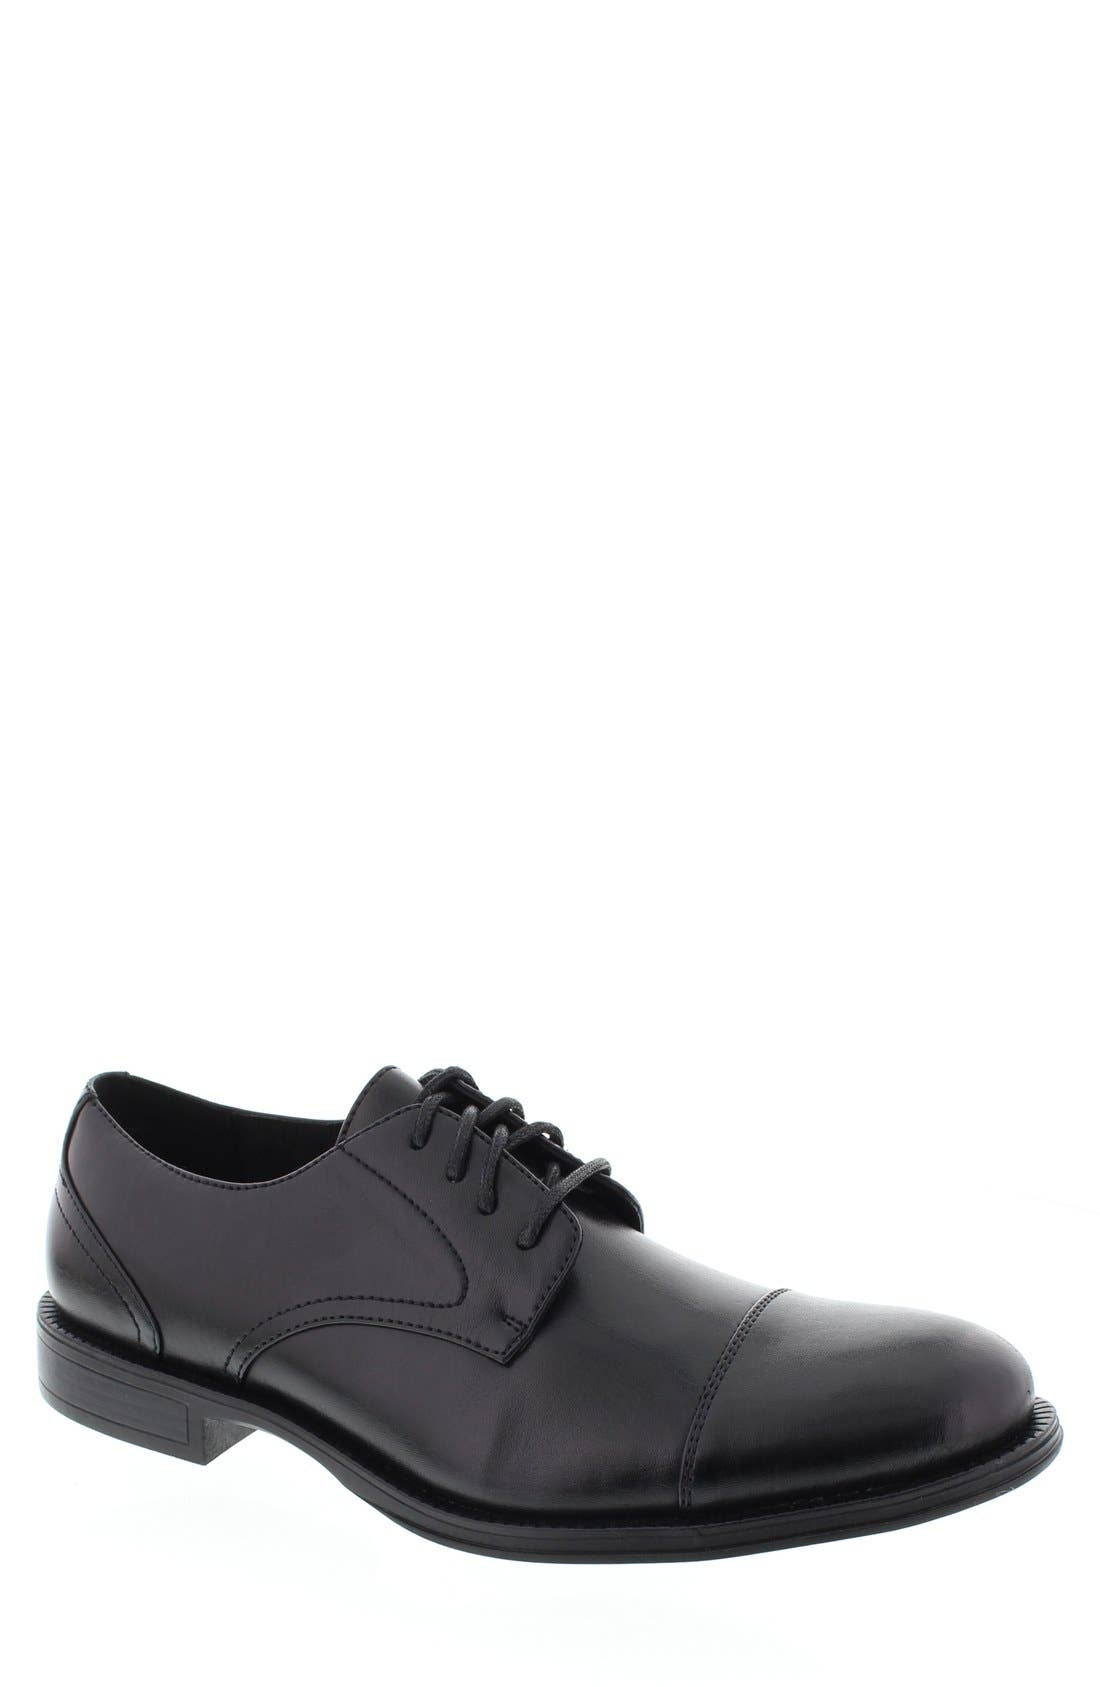 DEER STAGS 'Mode' Leather Cap Toe Derby